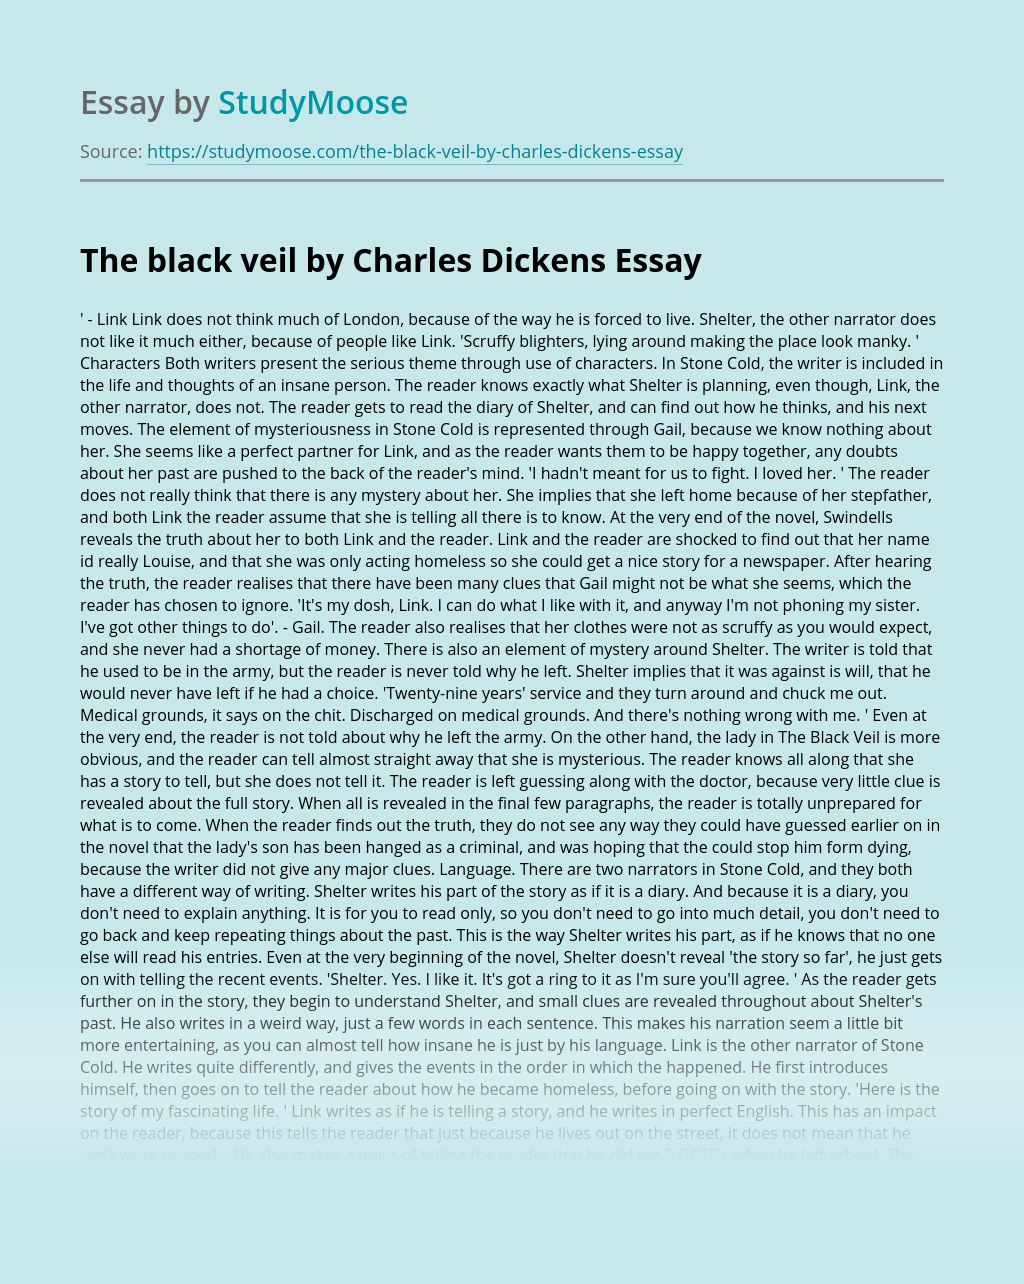 The black veil by Charles Dickens